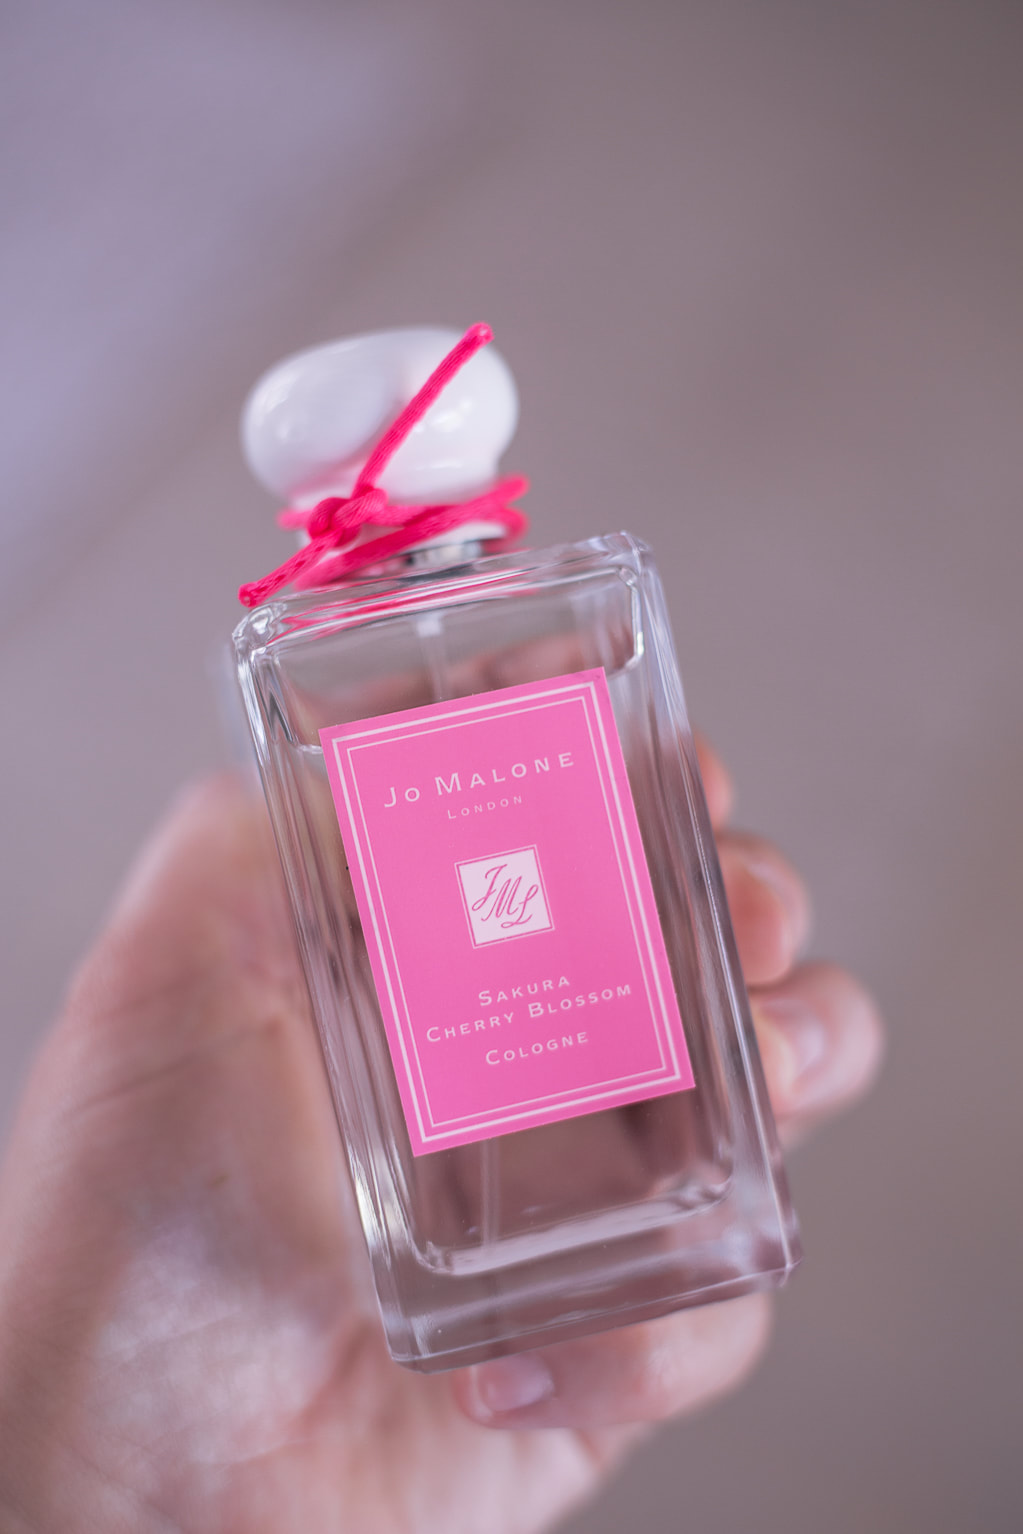 Jo Malone Sakura Cherry Blossom Cologne By The Belle Blog